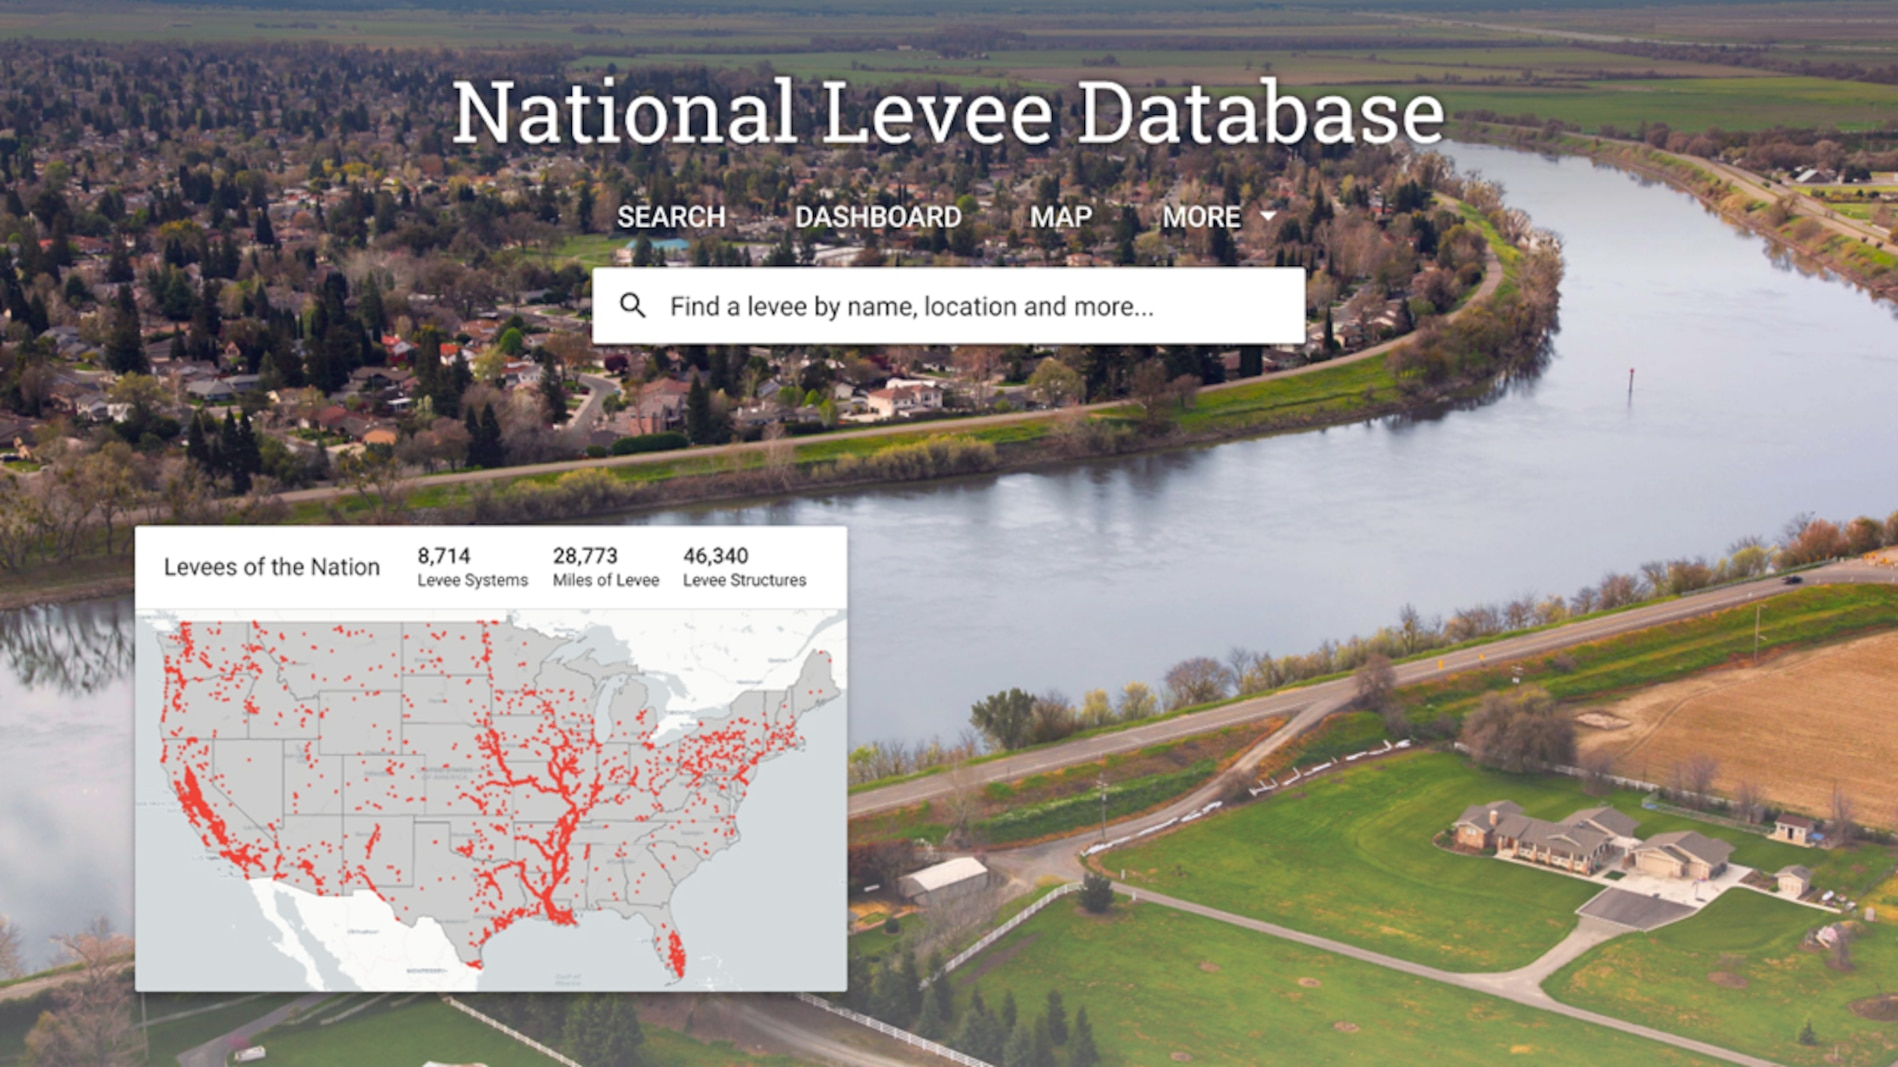 """The National Levee Database is a public view into the information that builds understanding of the benefits and potential risks levees pose for the communities in which they exist,"" said Eric C. Halpin, P.E., USACE deputy dam and levee safety officer."